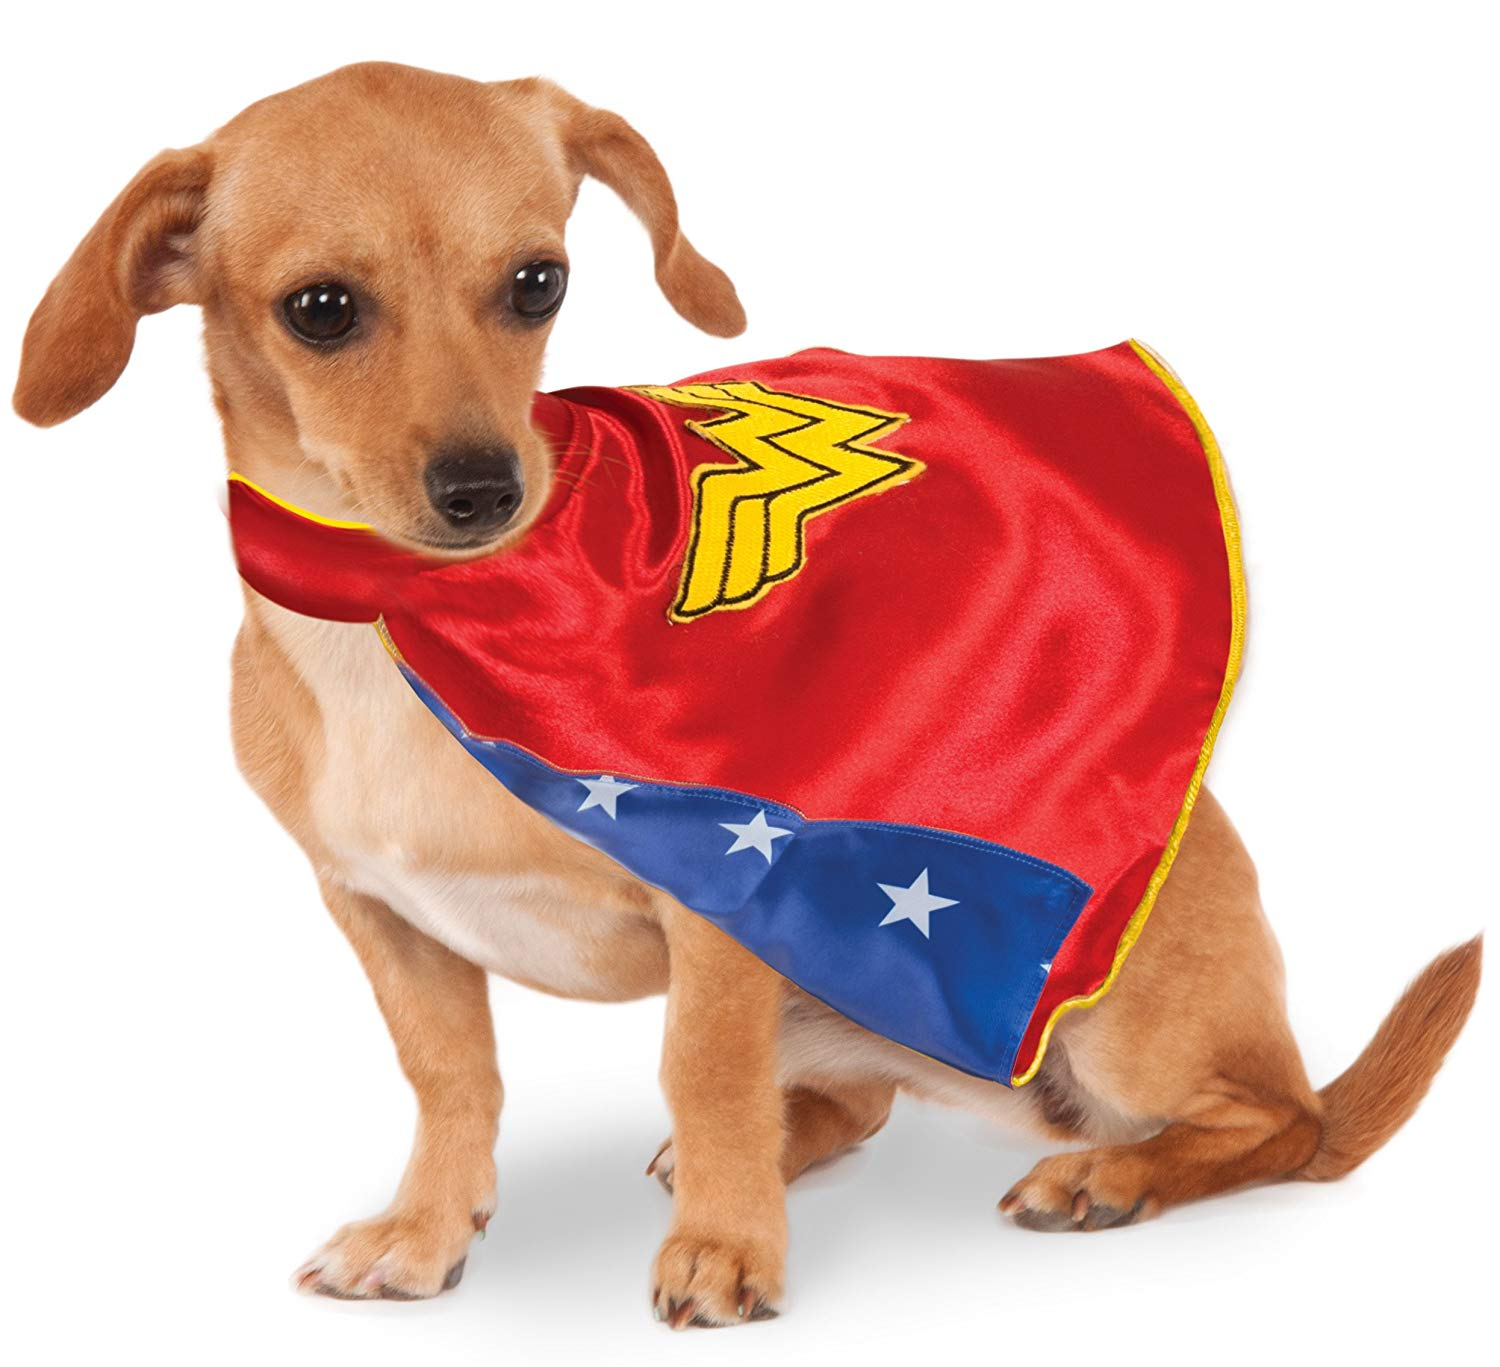 capes for dogs a dog wearing a Wonder Woman cape